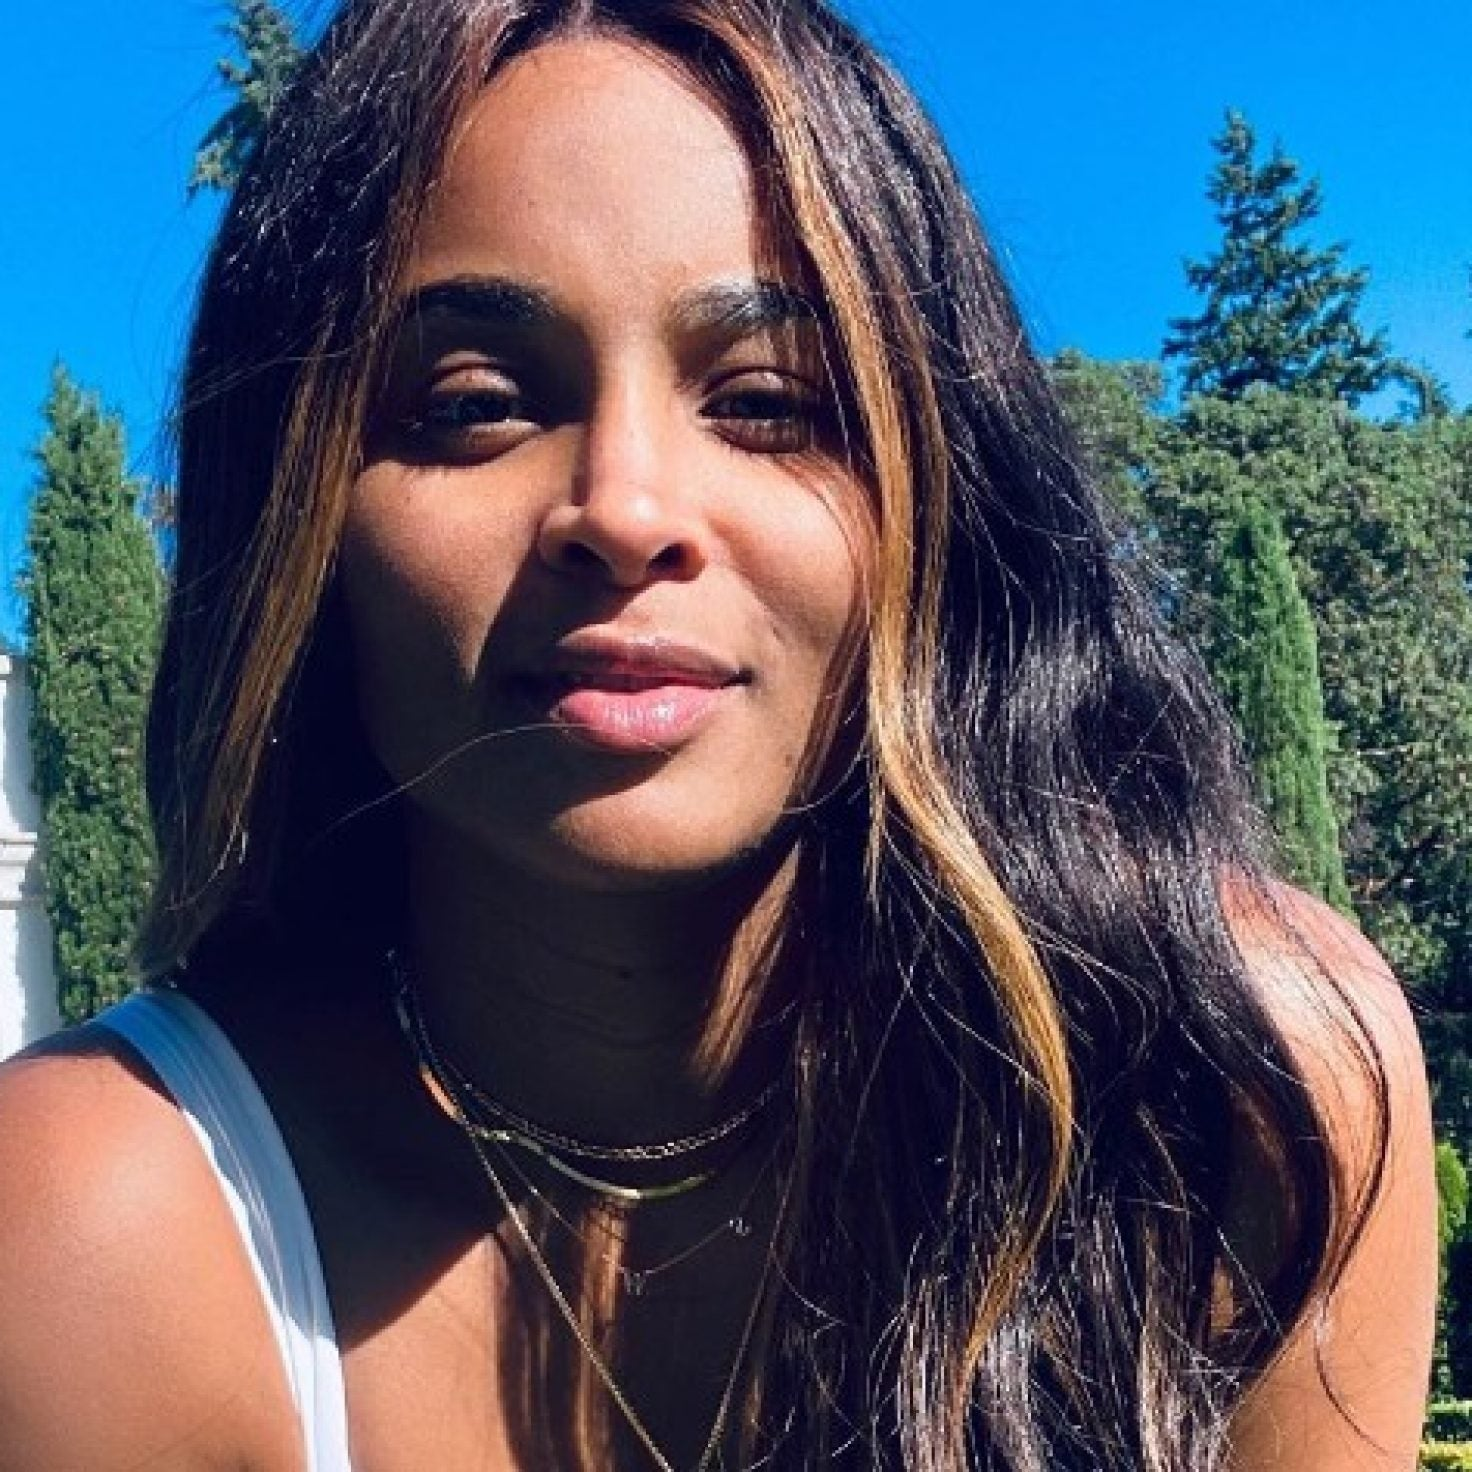 Ciara, Ava DuVernay, H.E.R. And Other Celebrity Beauty Looks Of The Week